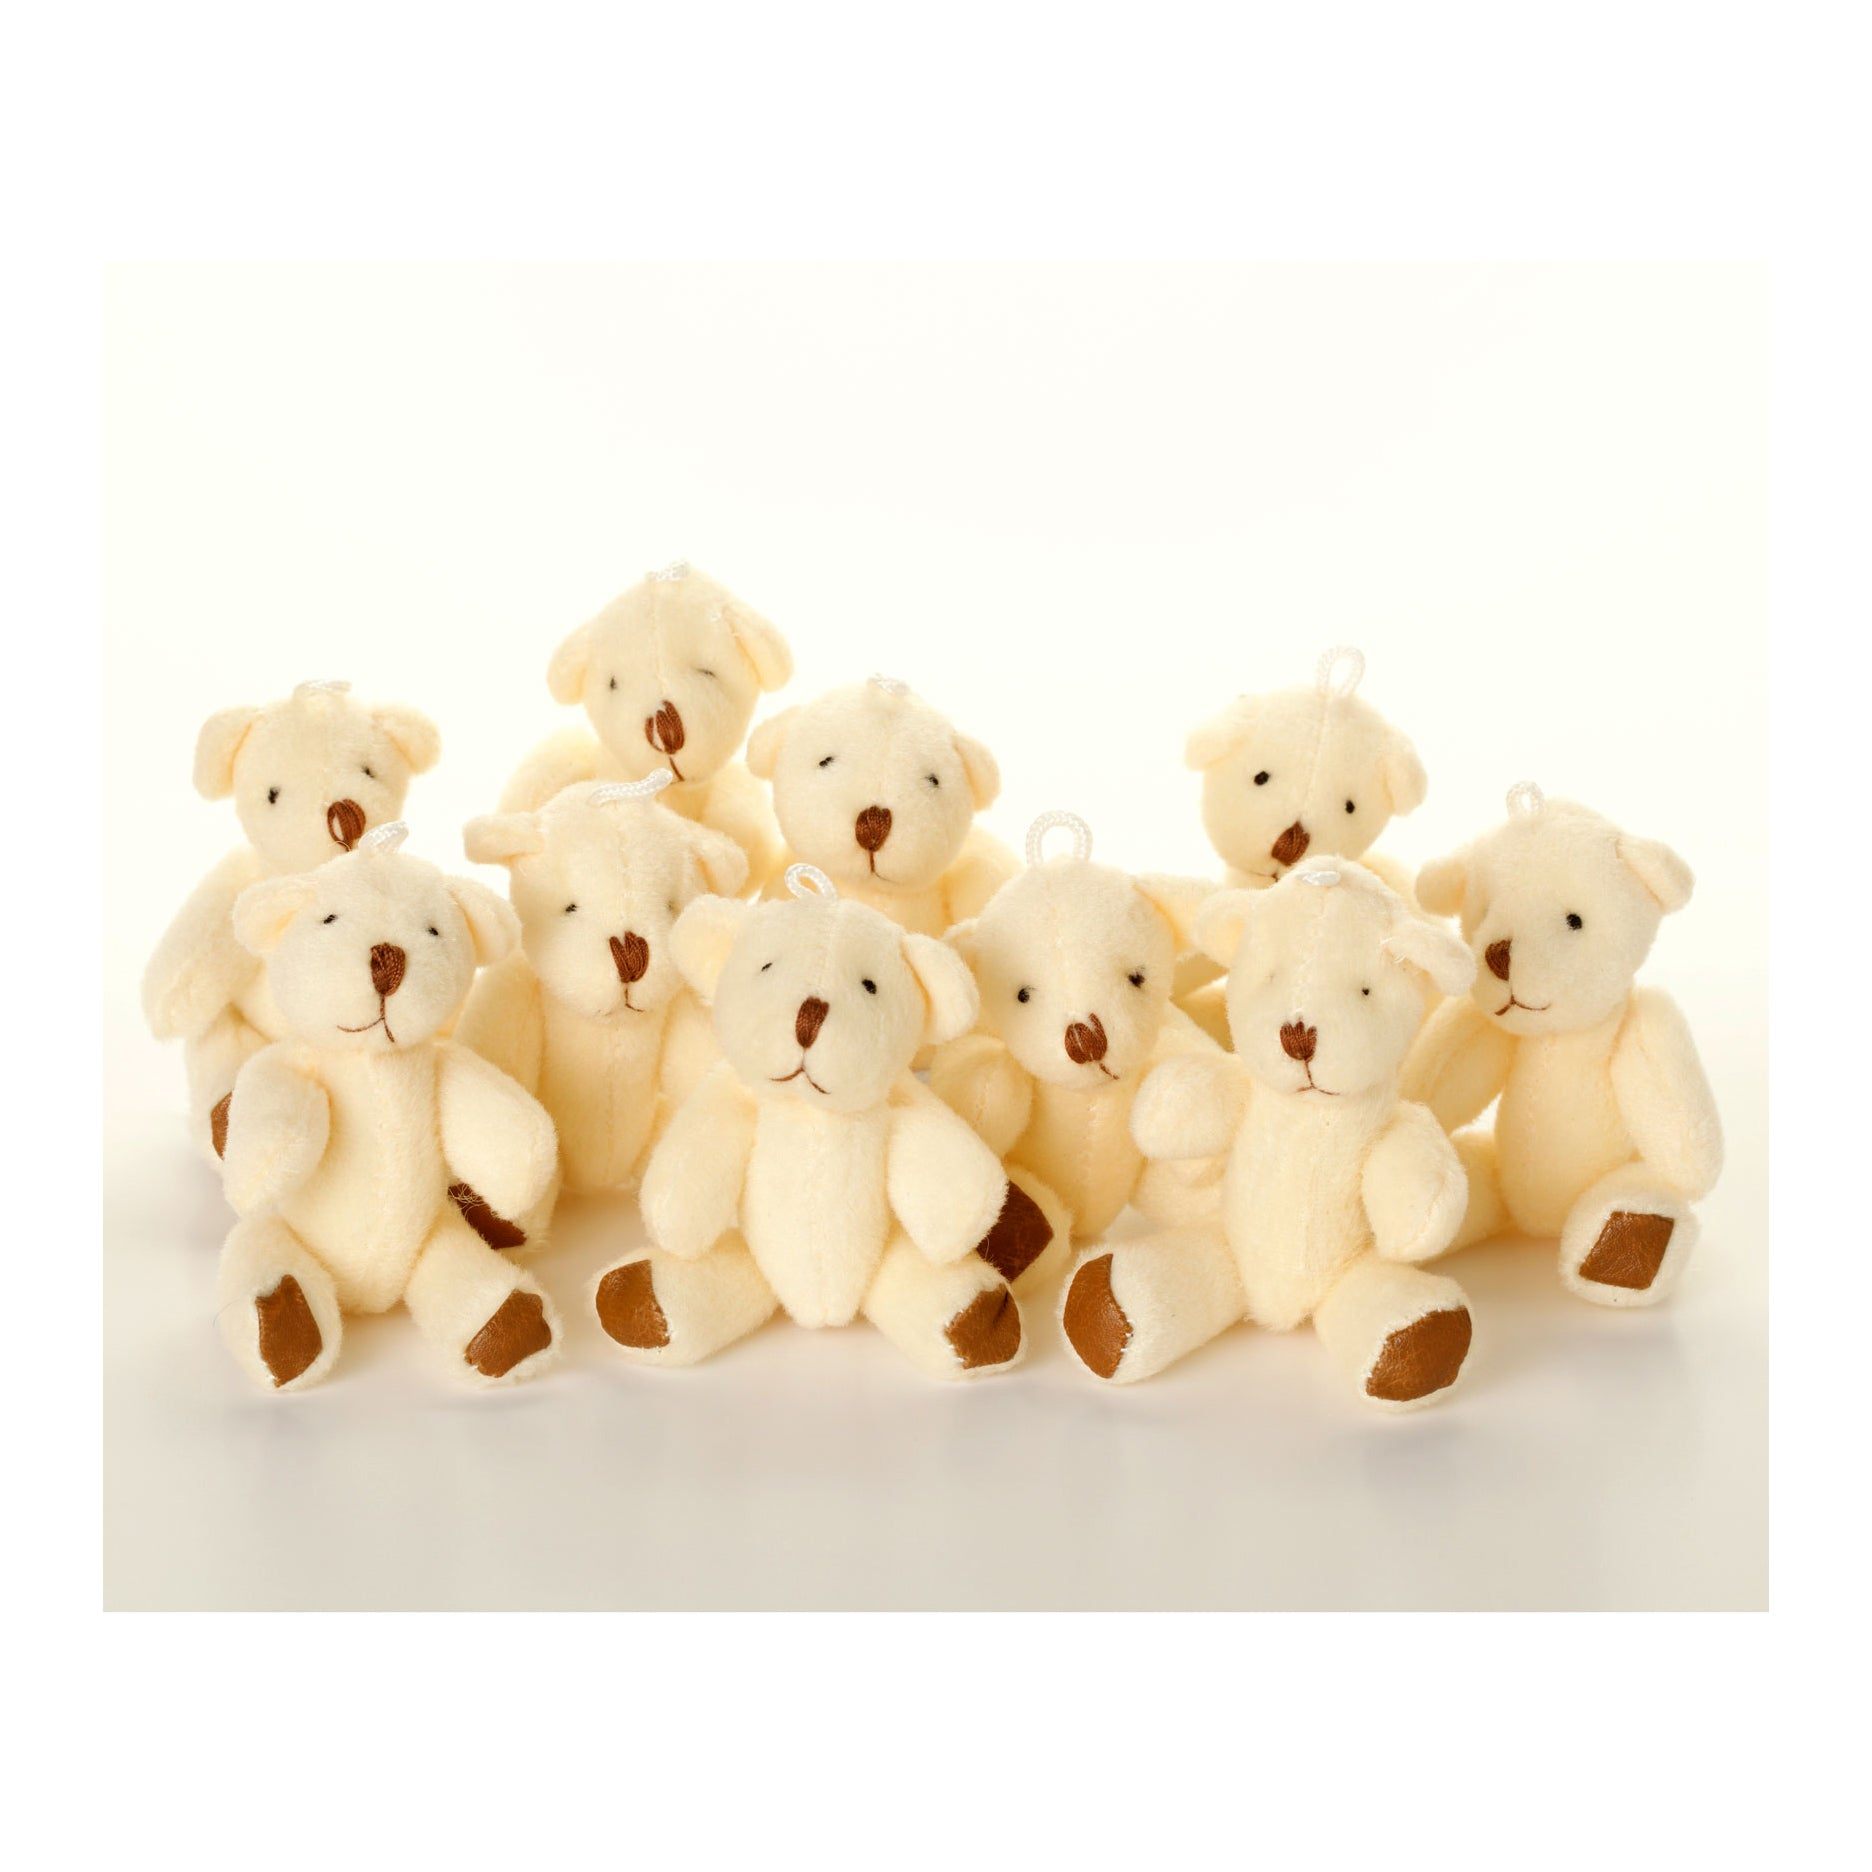 Small WHITE Teddy Bears X 35 - Cute Soft Adorable